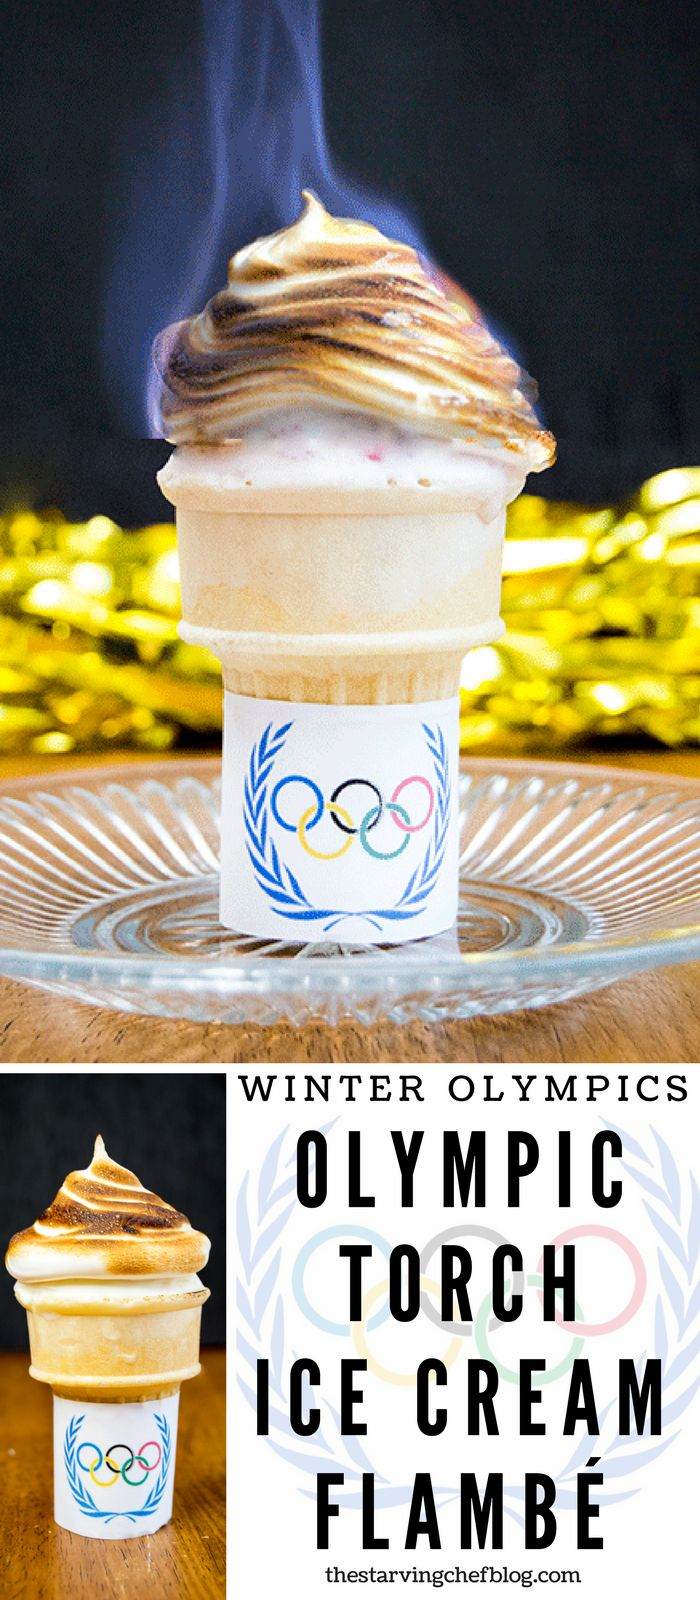 The Starving Chef | Pass the Olympic Torch - flame and all - with this easy ice cream flambe!